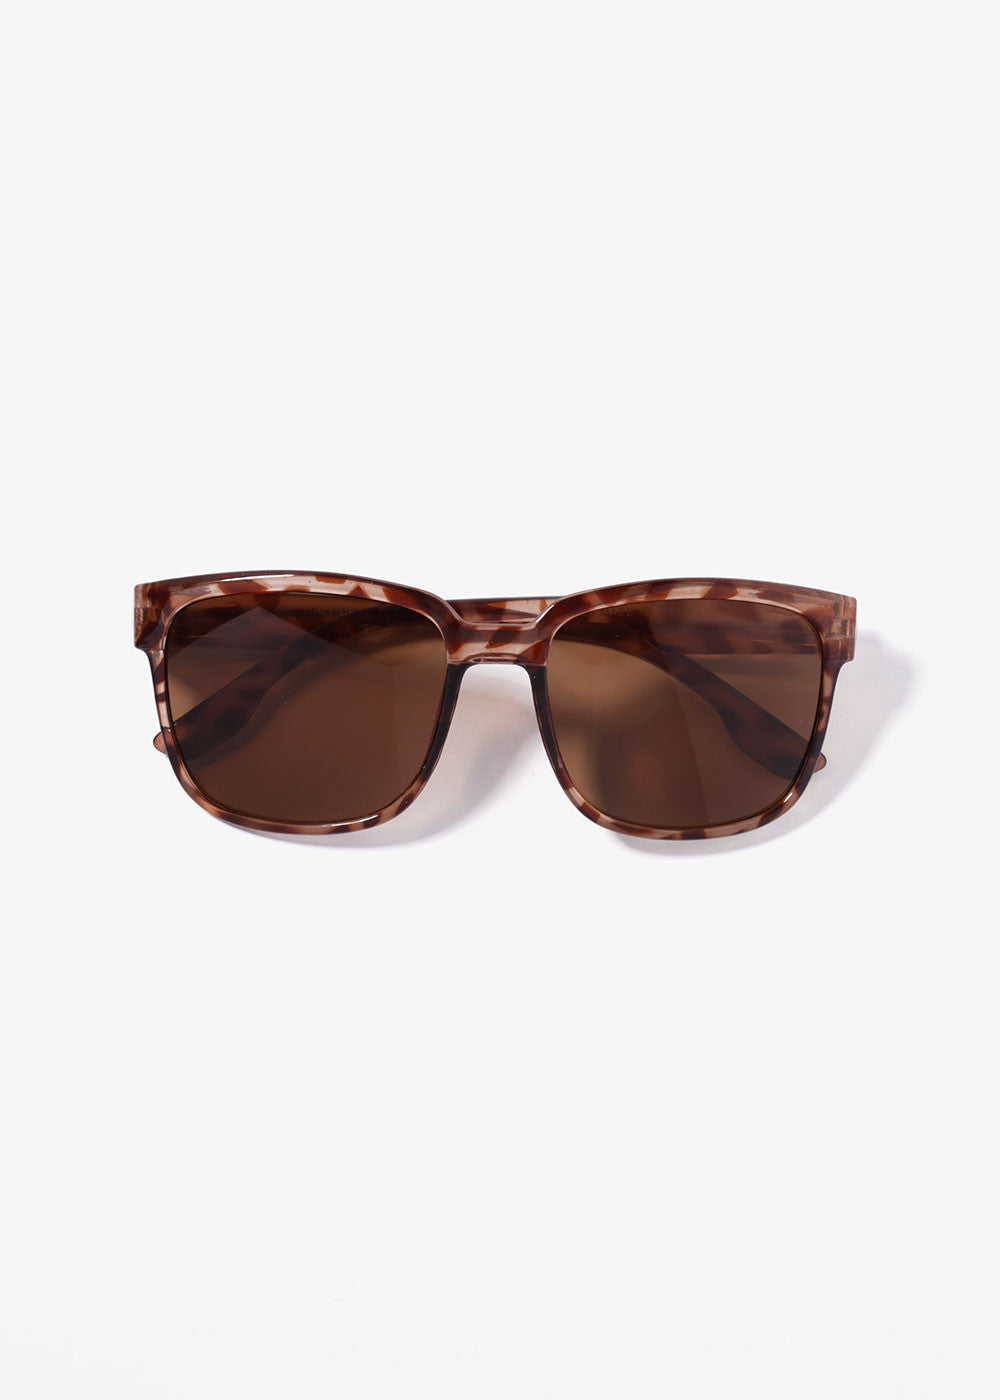 Chic Square Sunglasses- Tortoise